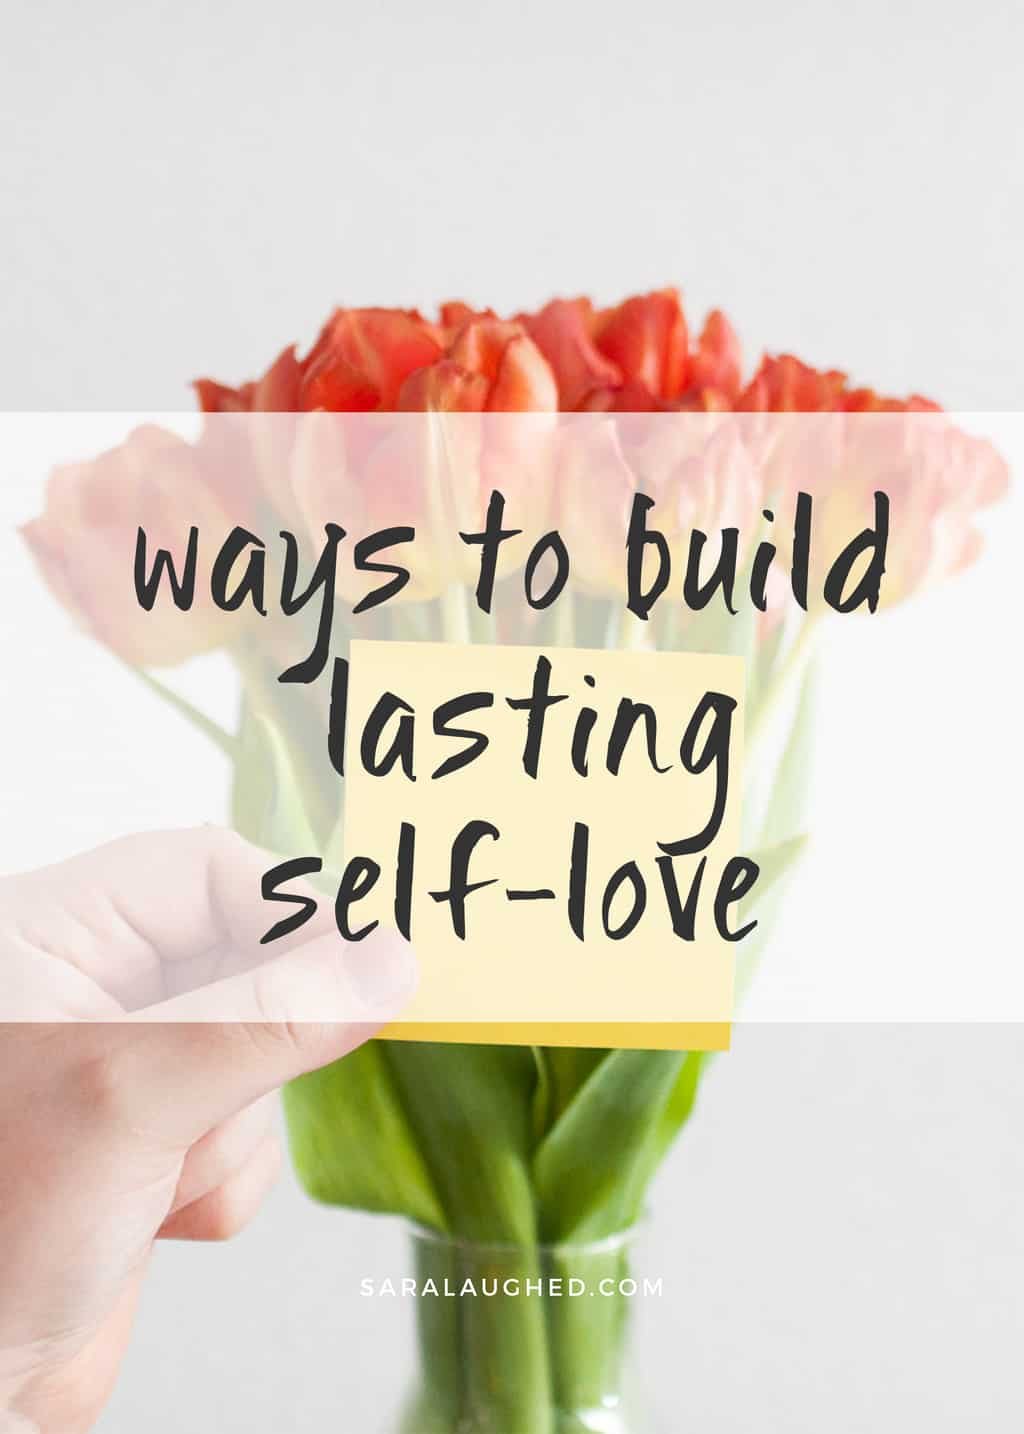 Self-love is not selfish; it is a necessary part of life! Here are a few authentic ways to build self-esteem and grow a healthy self-love.